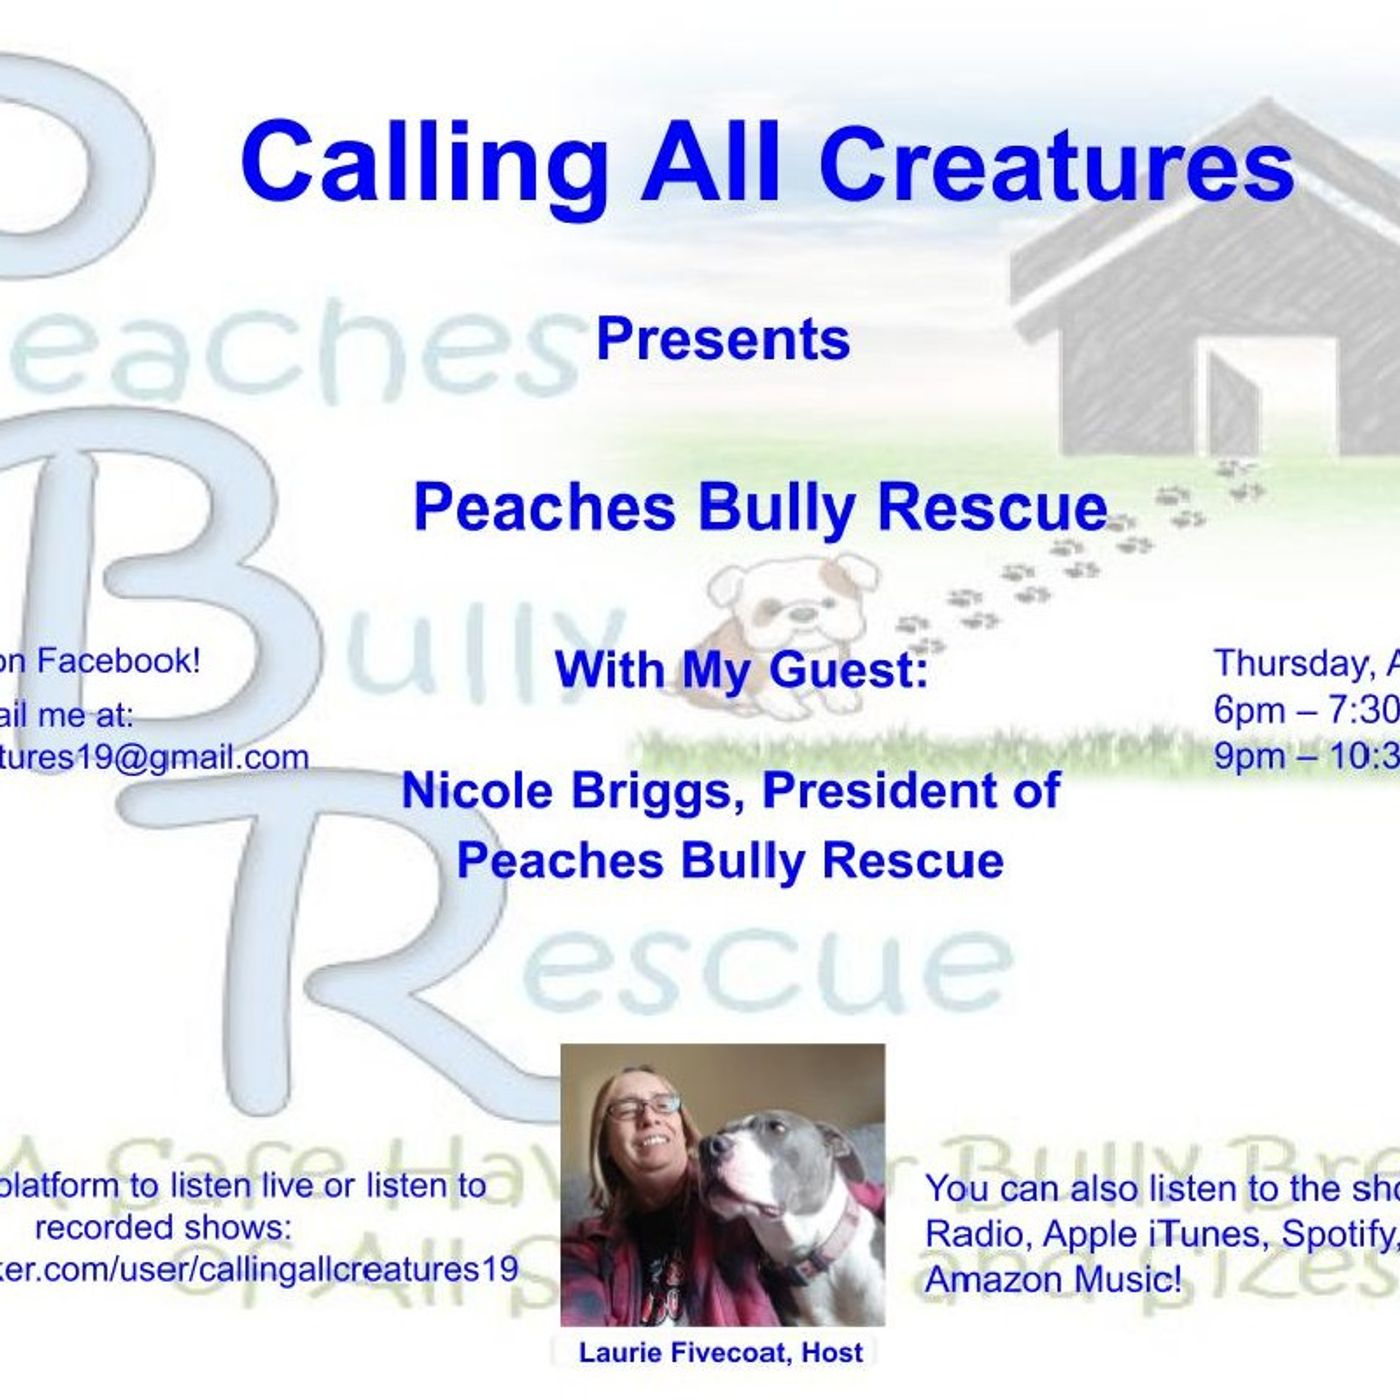 Calling All Creatures Presents Peaches Bully Rescue